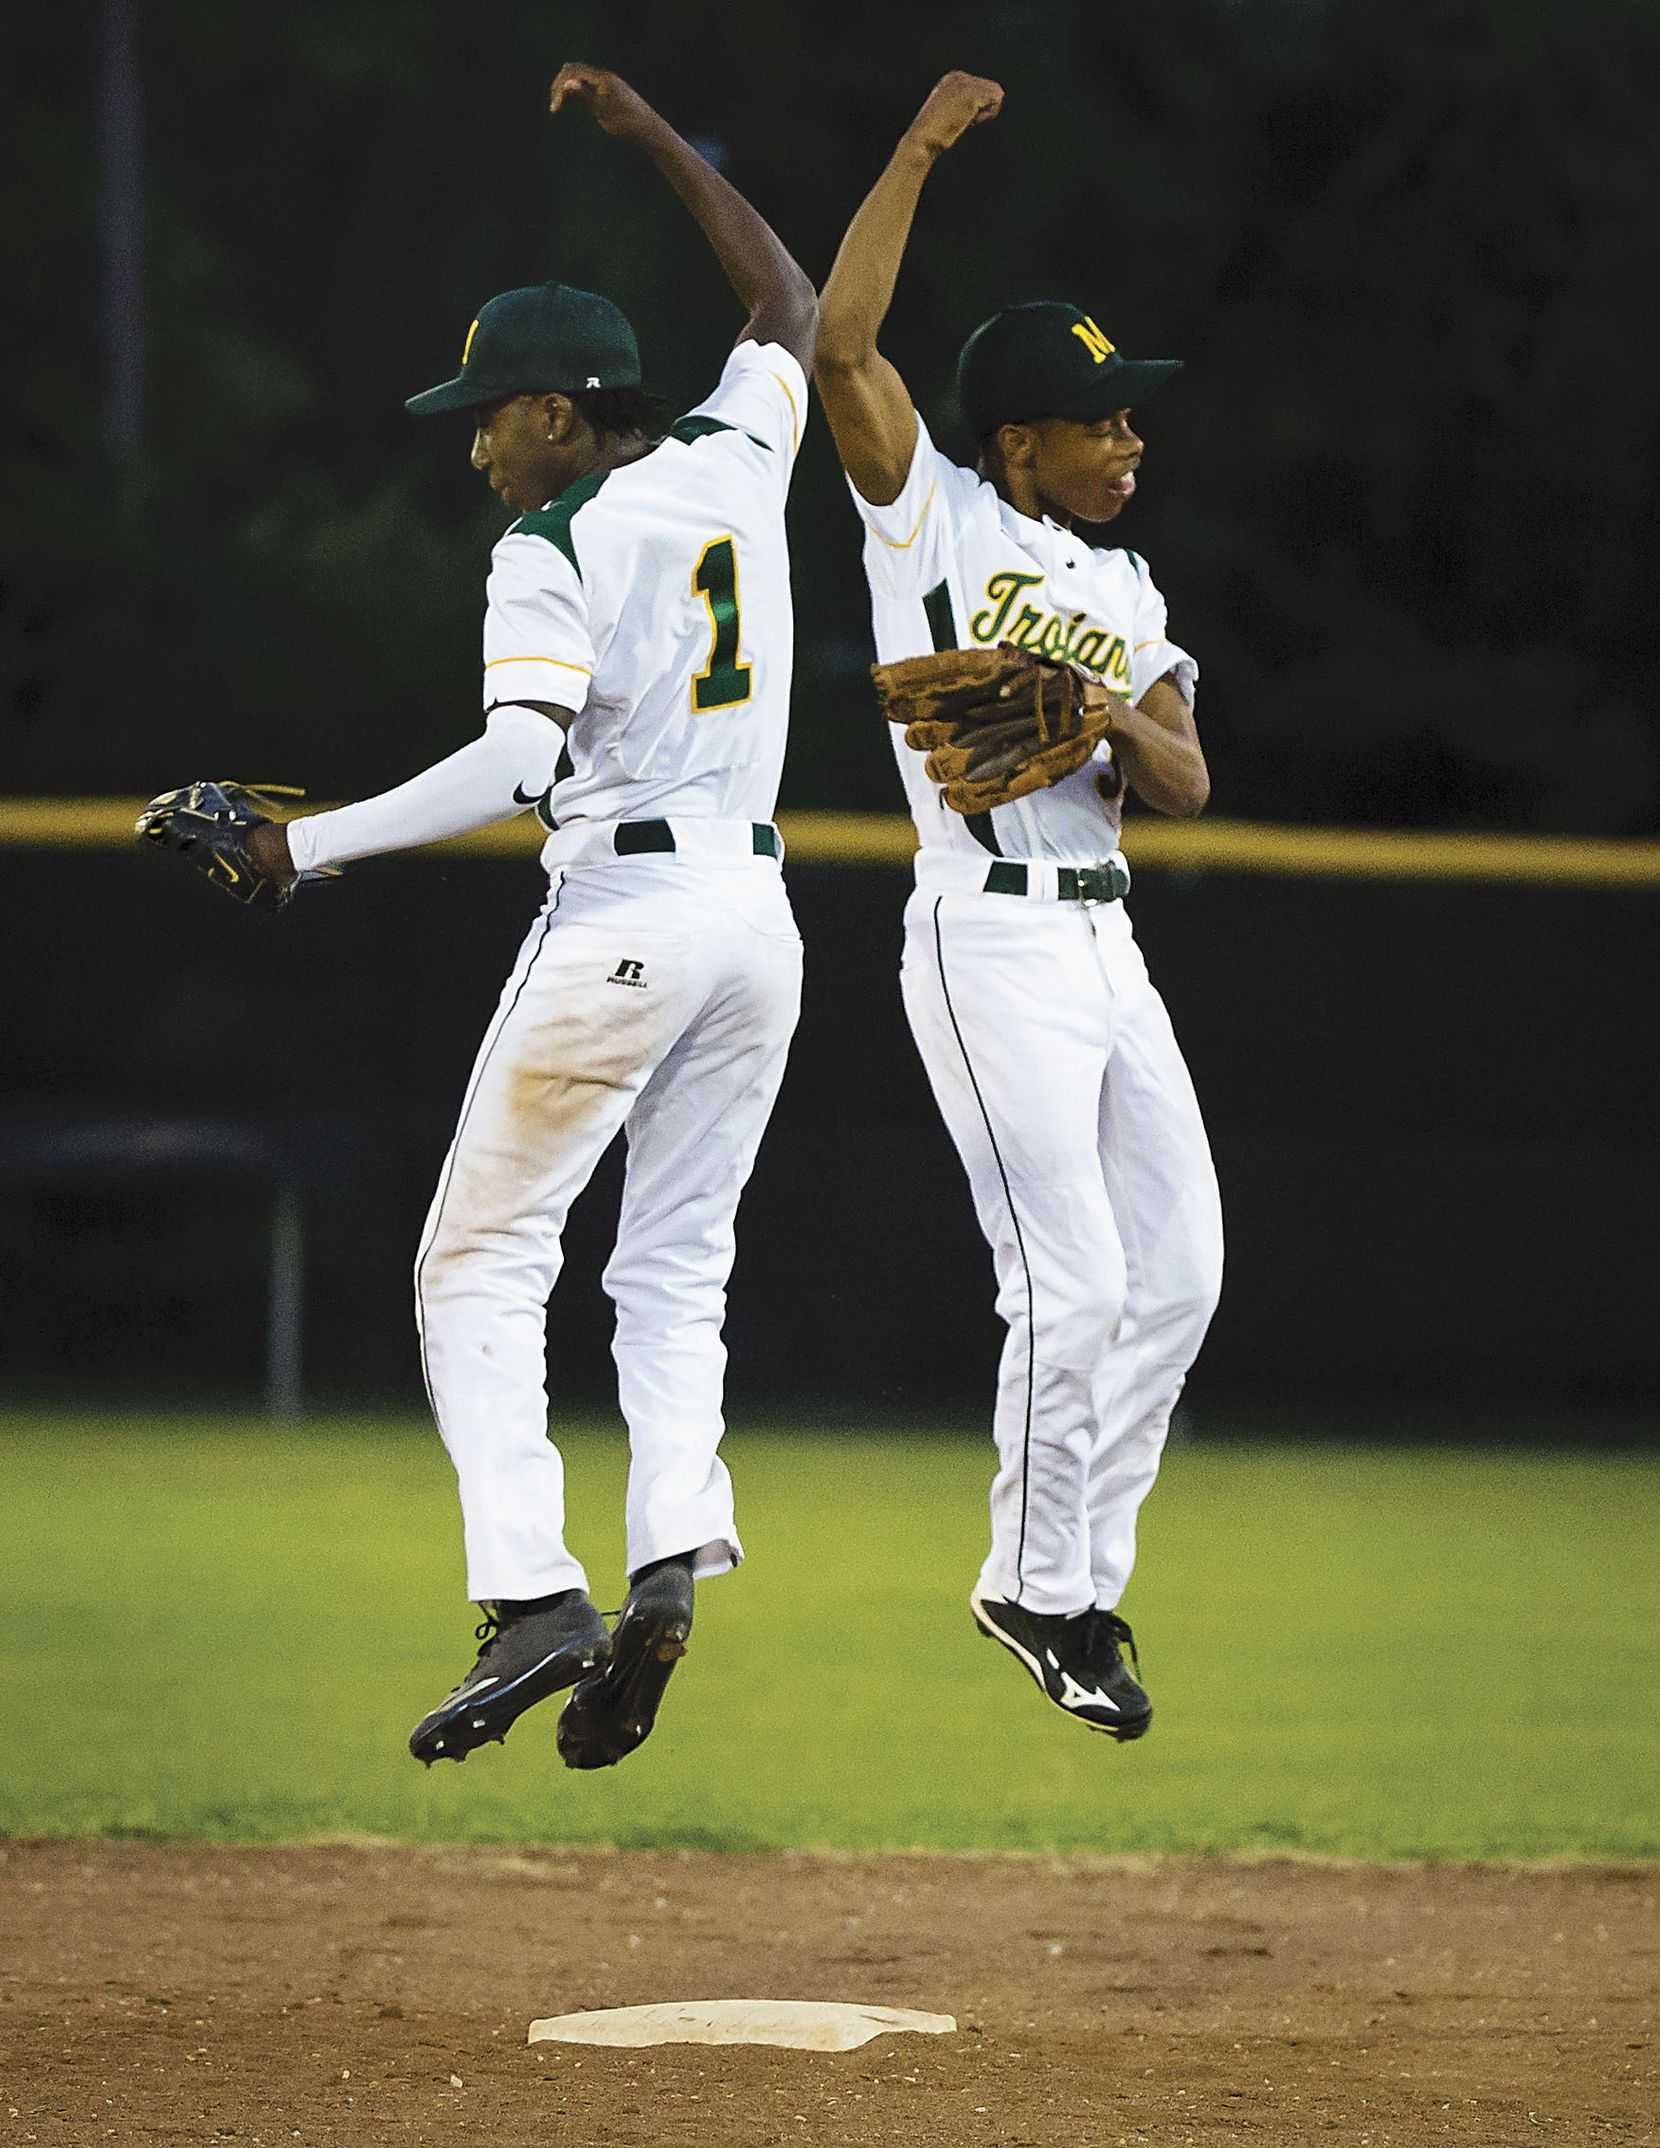 Madison High second baseman David Butler (left) and shortstop Juriod Hollie do a leaping high five as they take the field in the third inning against Kemp at Pleasant Grove Baseball Stadium.